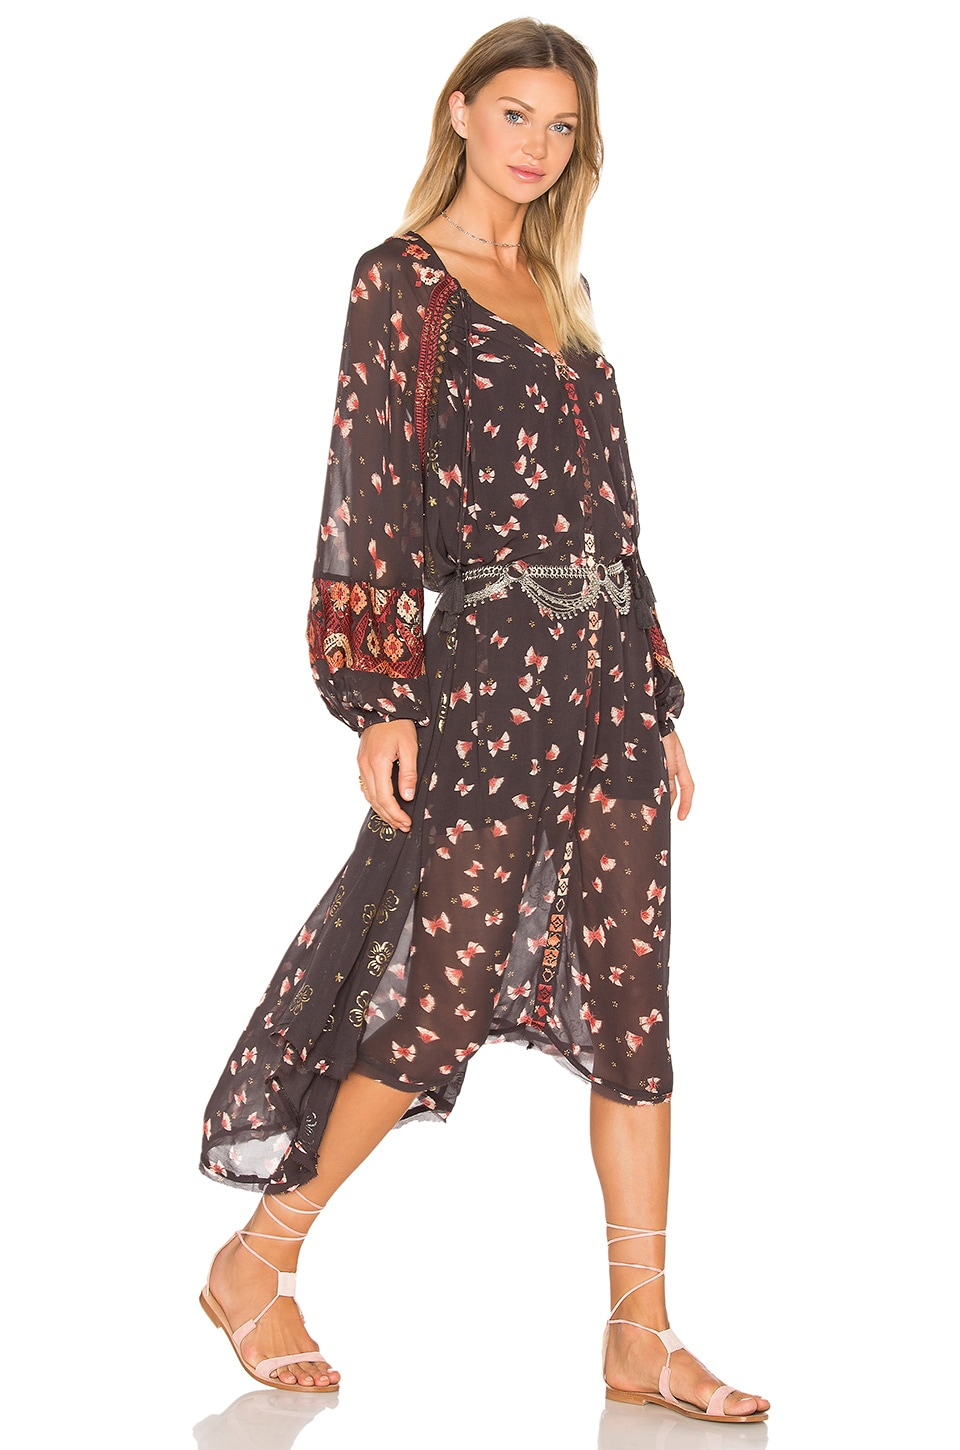 Viceroy Printed Dress by Free People